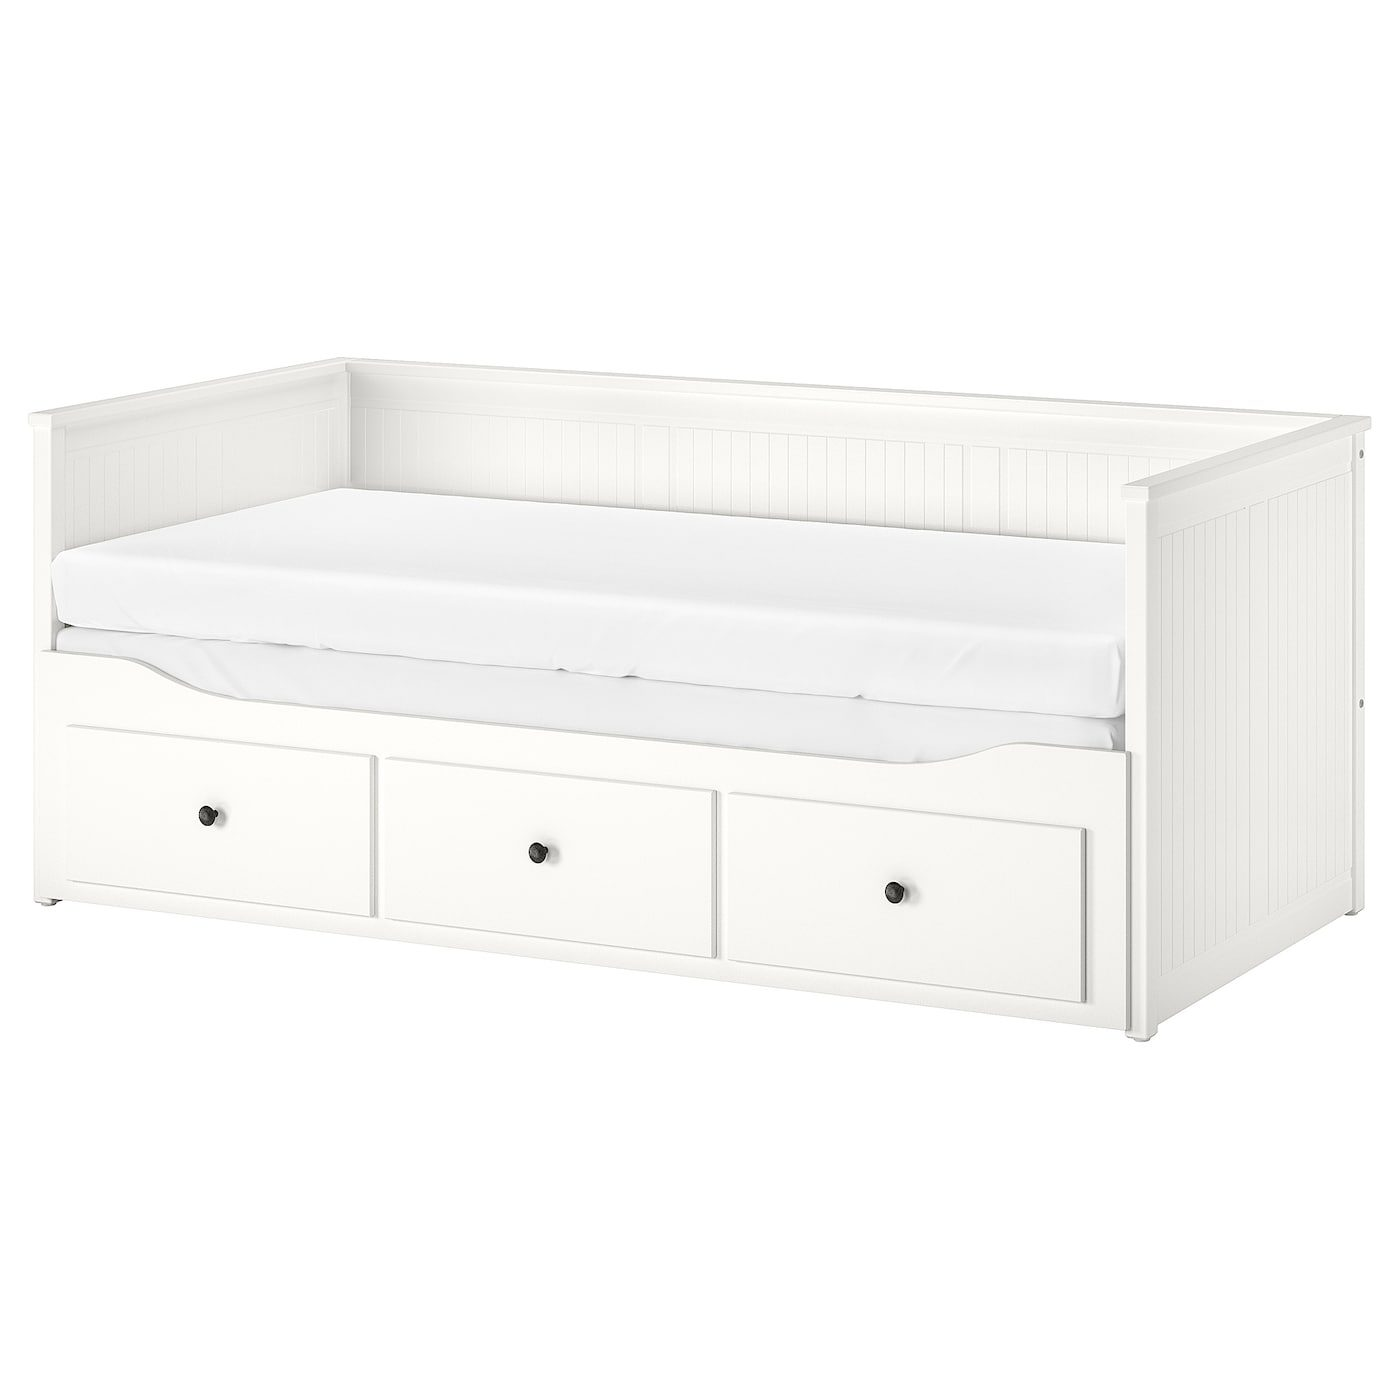 Hemnes Daybed With 3 Drawers 2 Mattresses White Meistervik Firm Ikeapedia